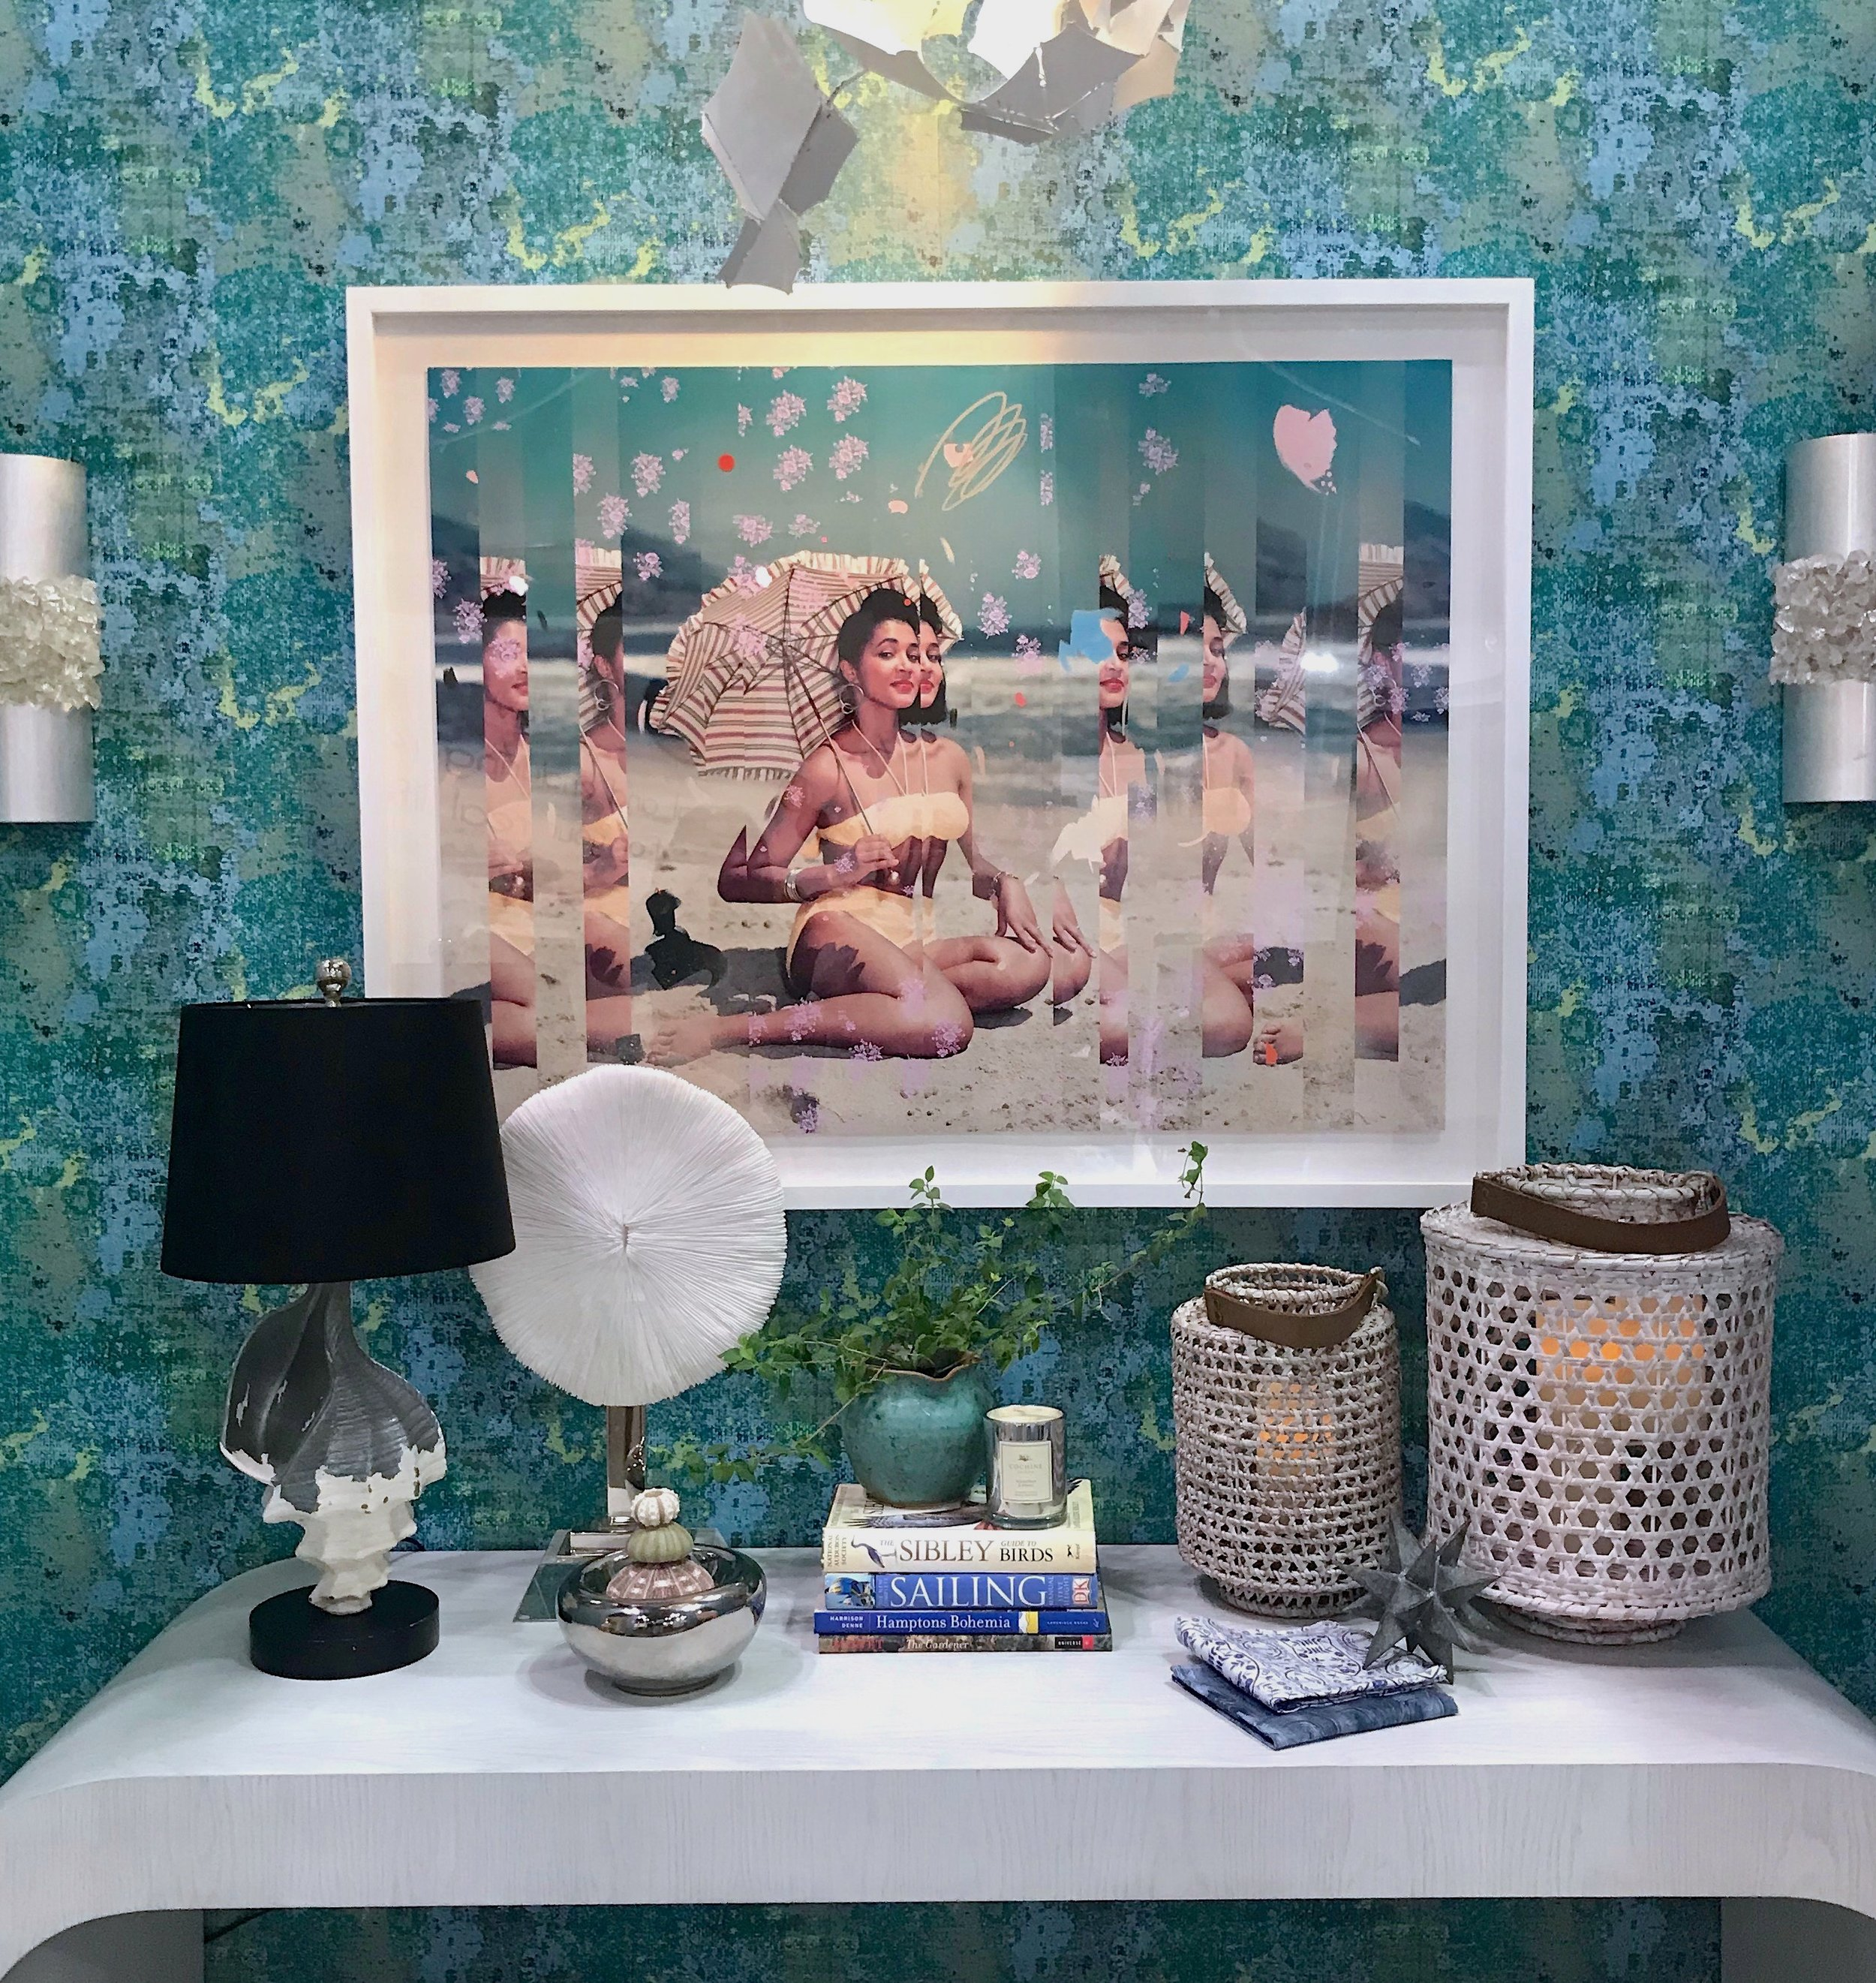 Thanks for visiting us at the NYNOW August, 2019 trade show at the Jacob Javits Center to see our foyer vignette -